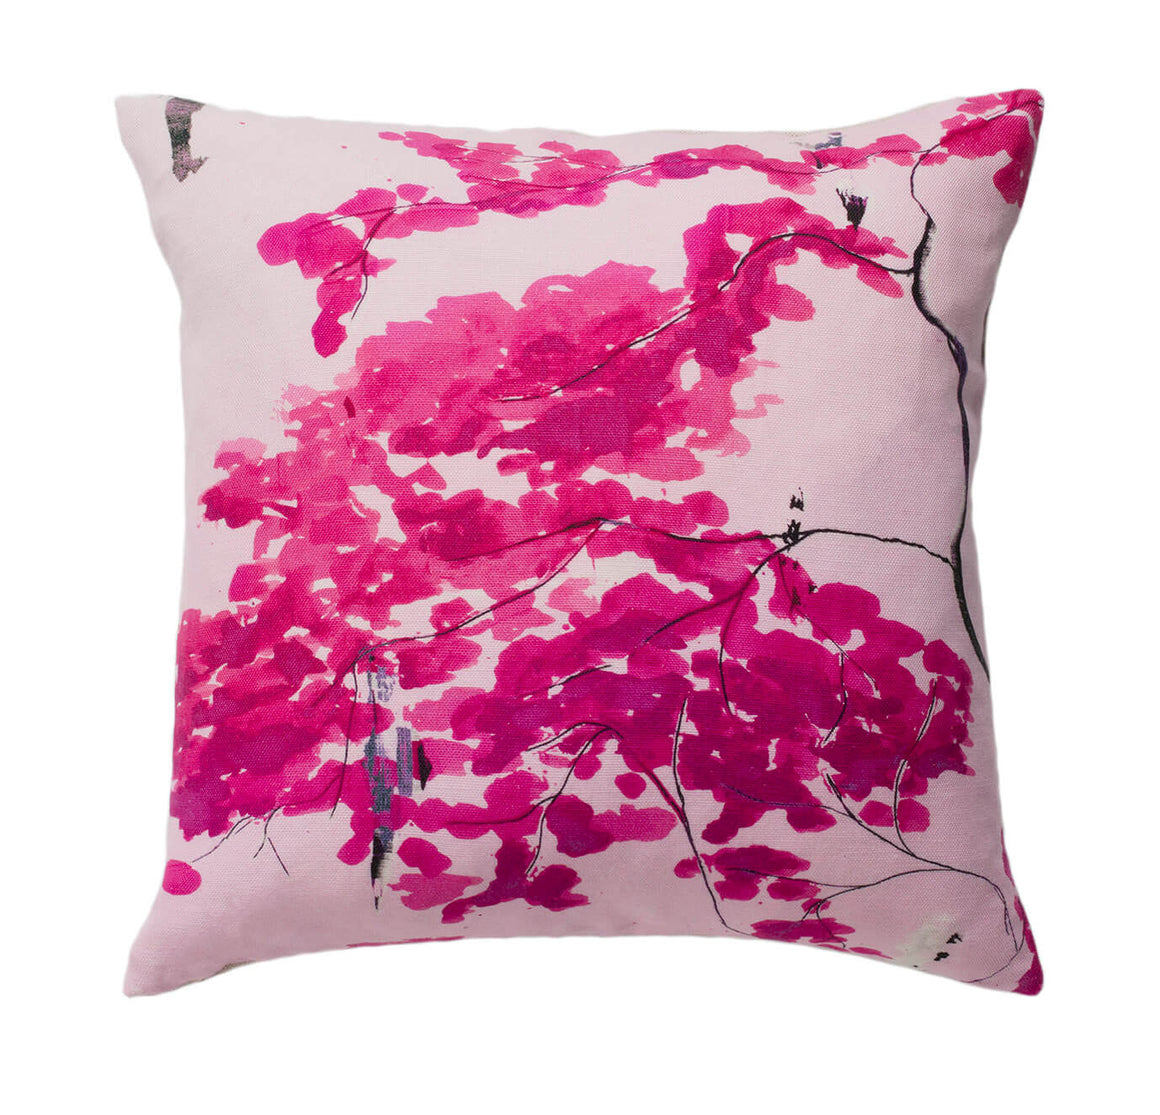 Violet cushion - Chinese Tree in Pink and Violet bolster by Anna jacobs